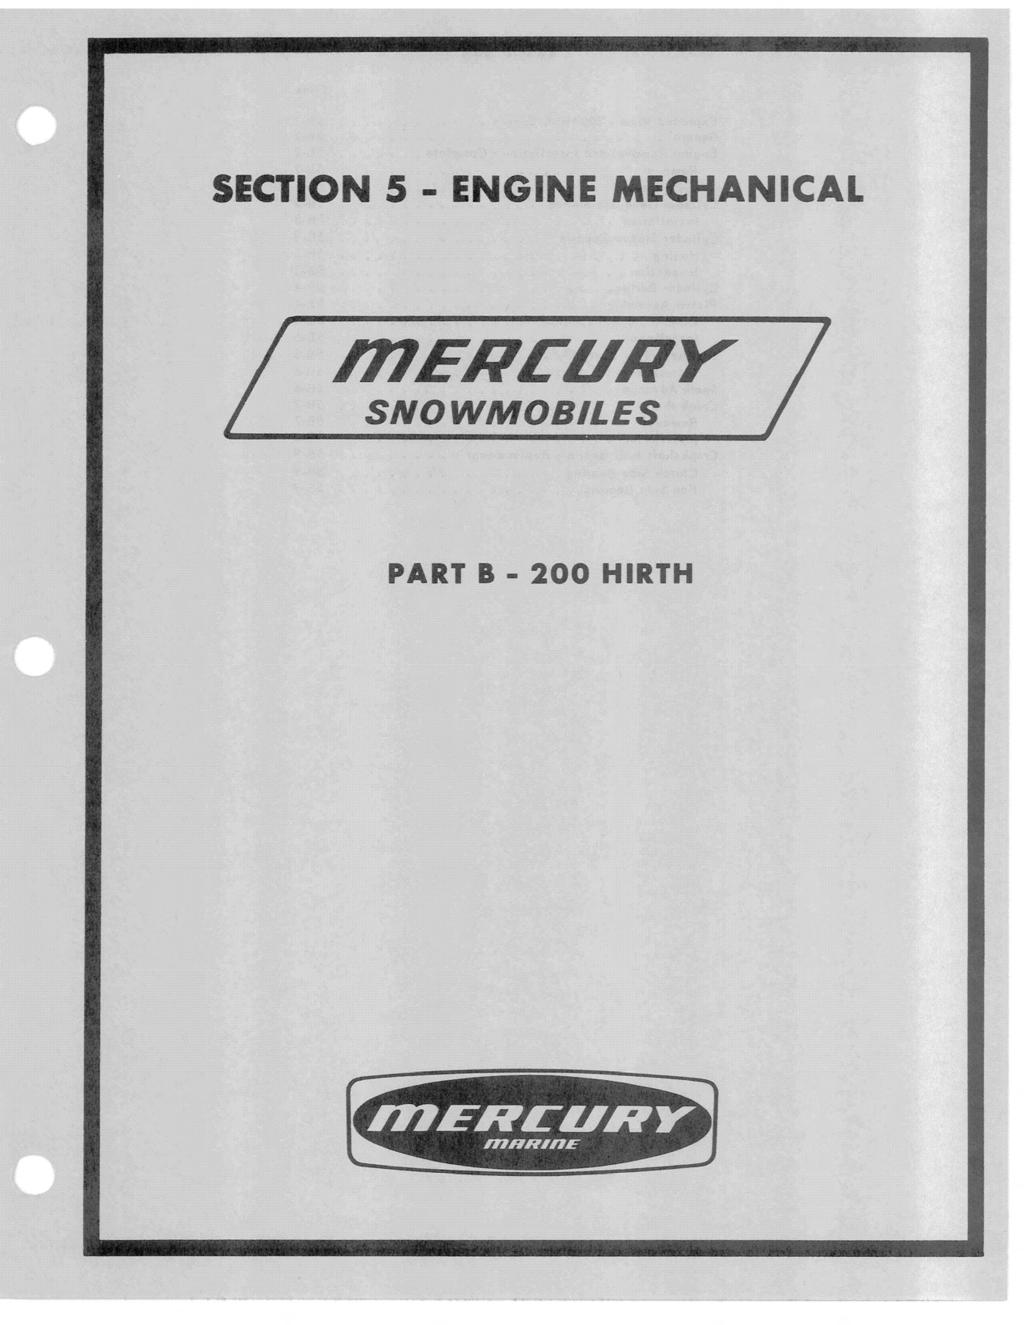 SECTION 5 - ENGINE MECHANICAL R1ENCUNY